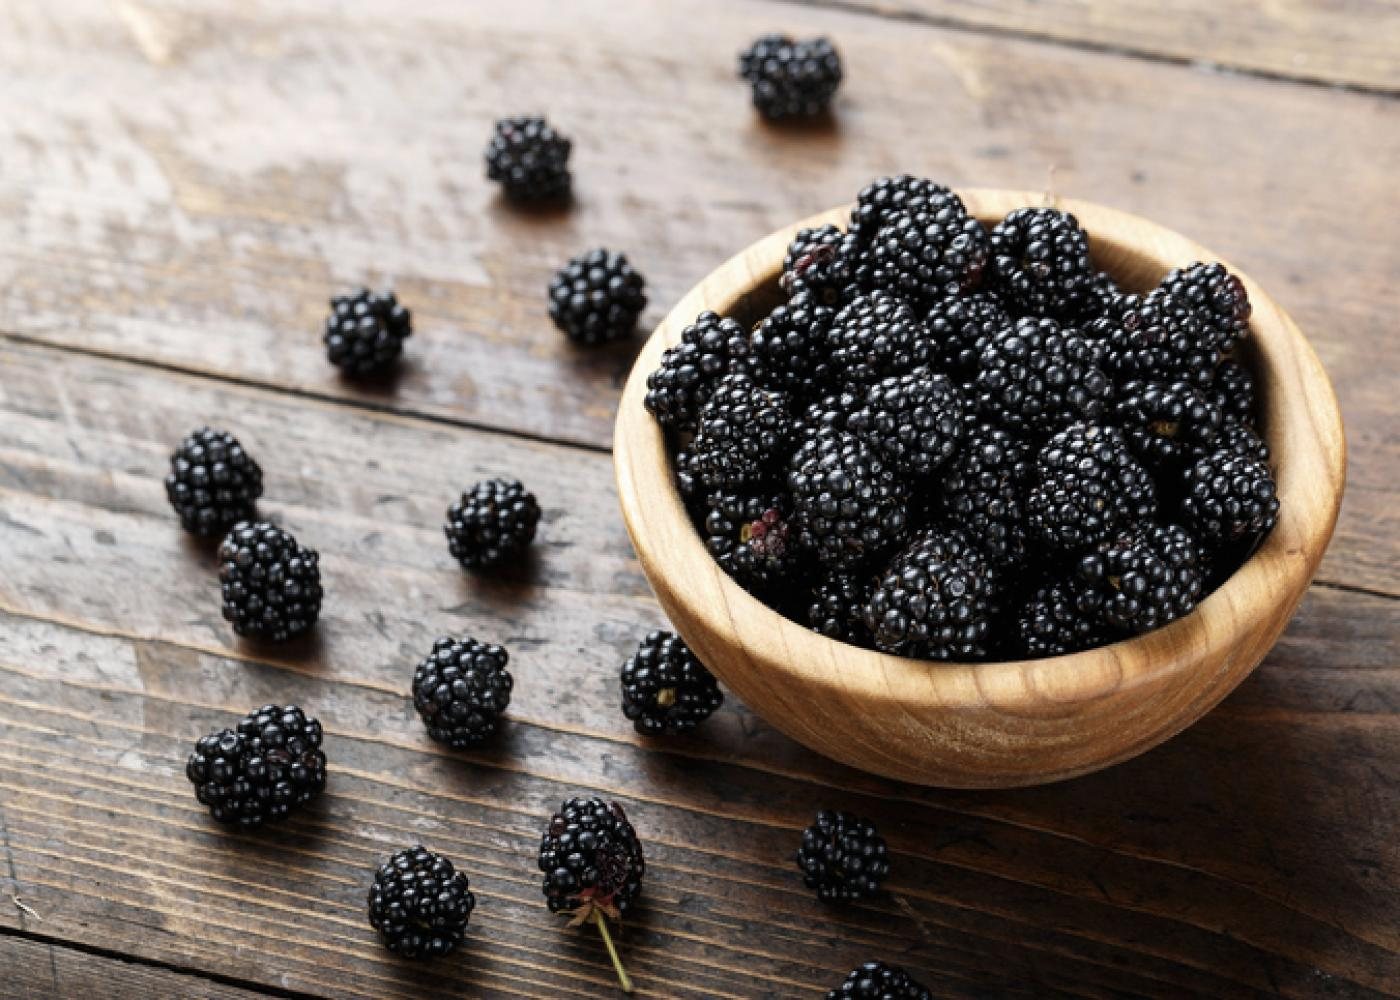 blackberries in a bowl with a few on the table next to the bowl